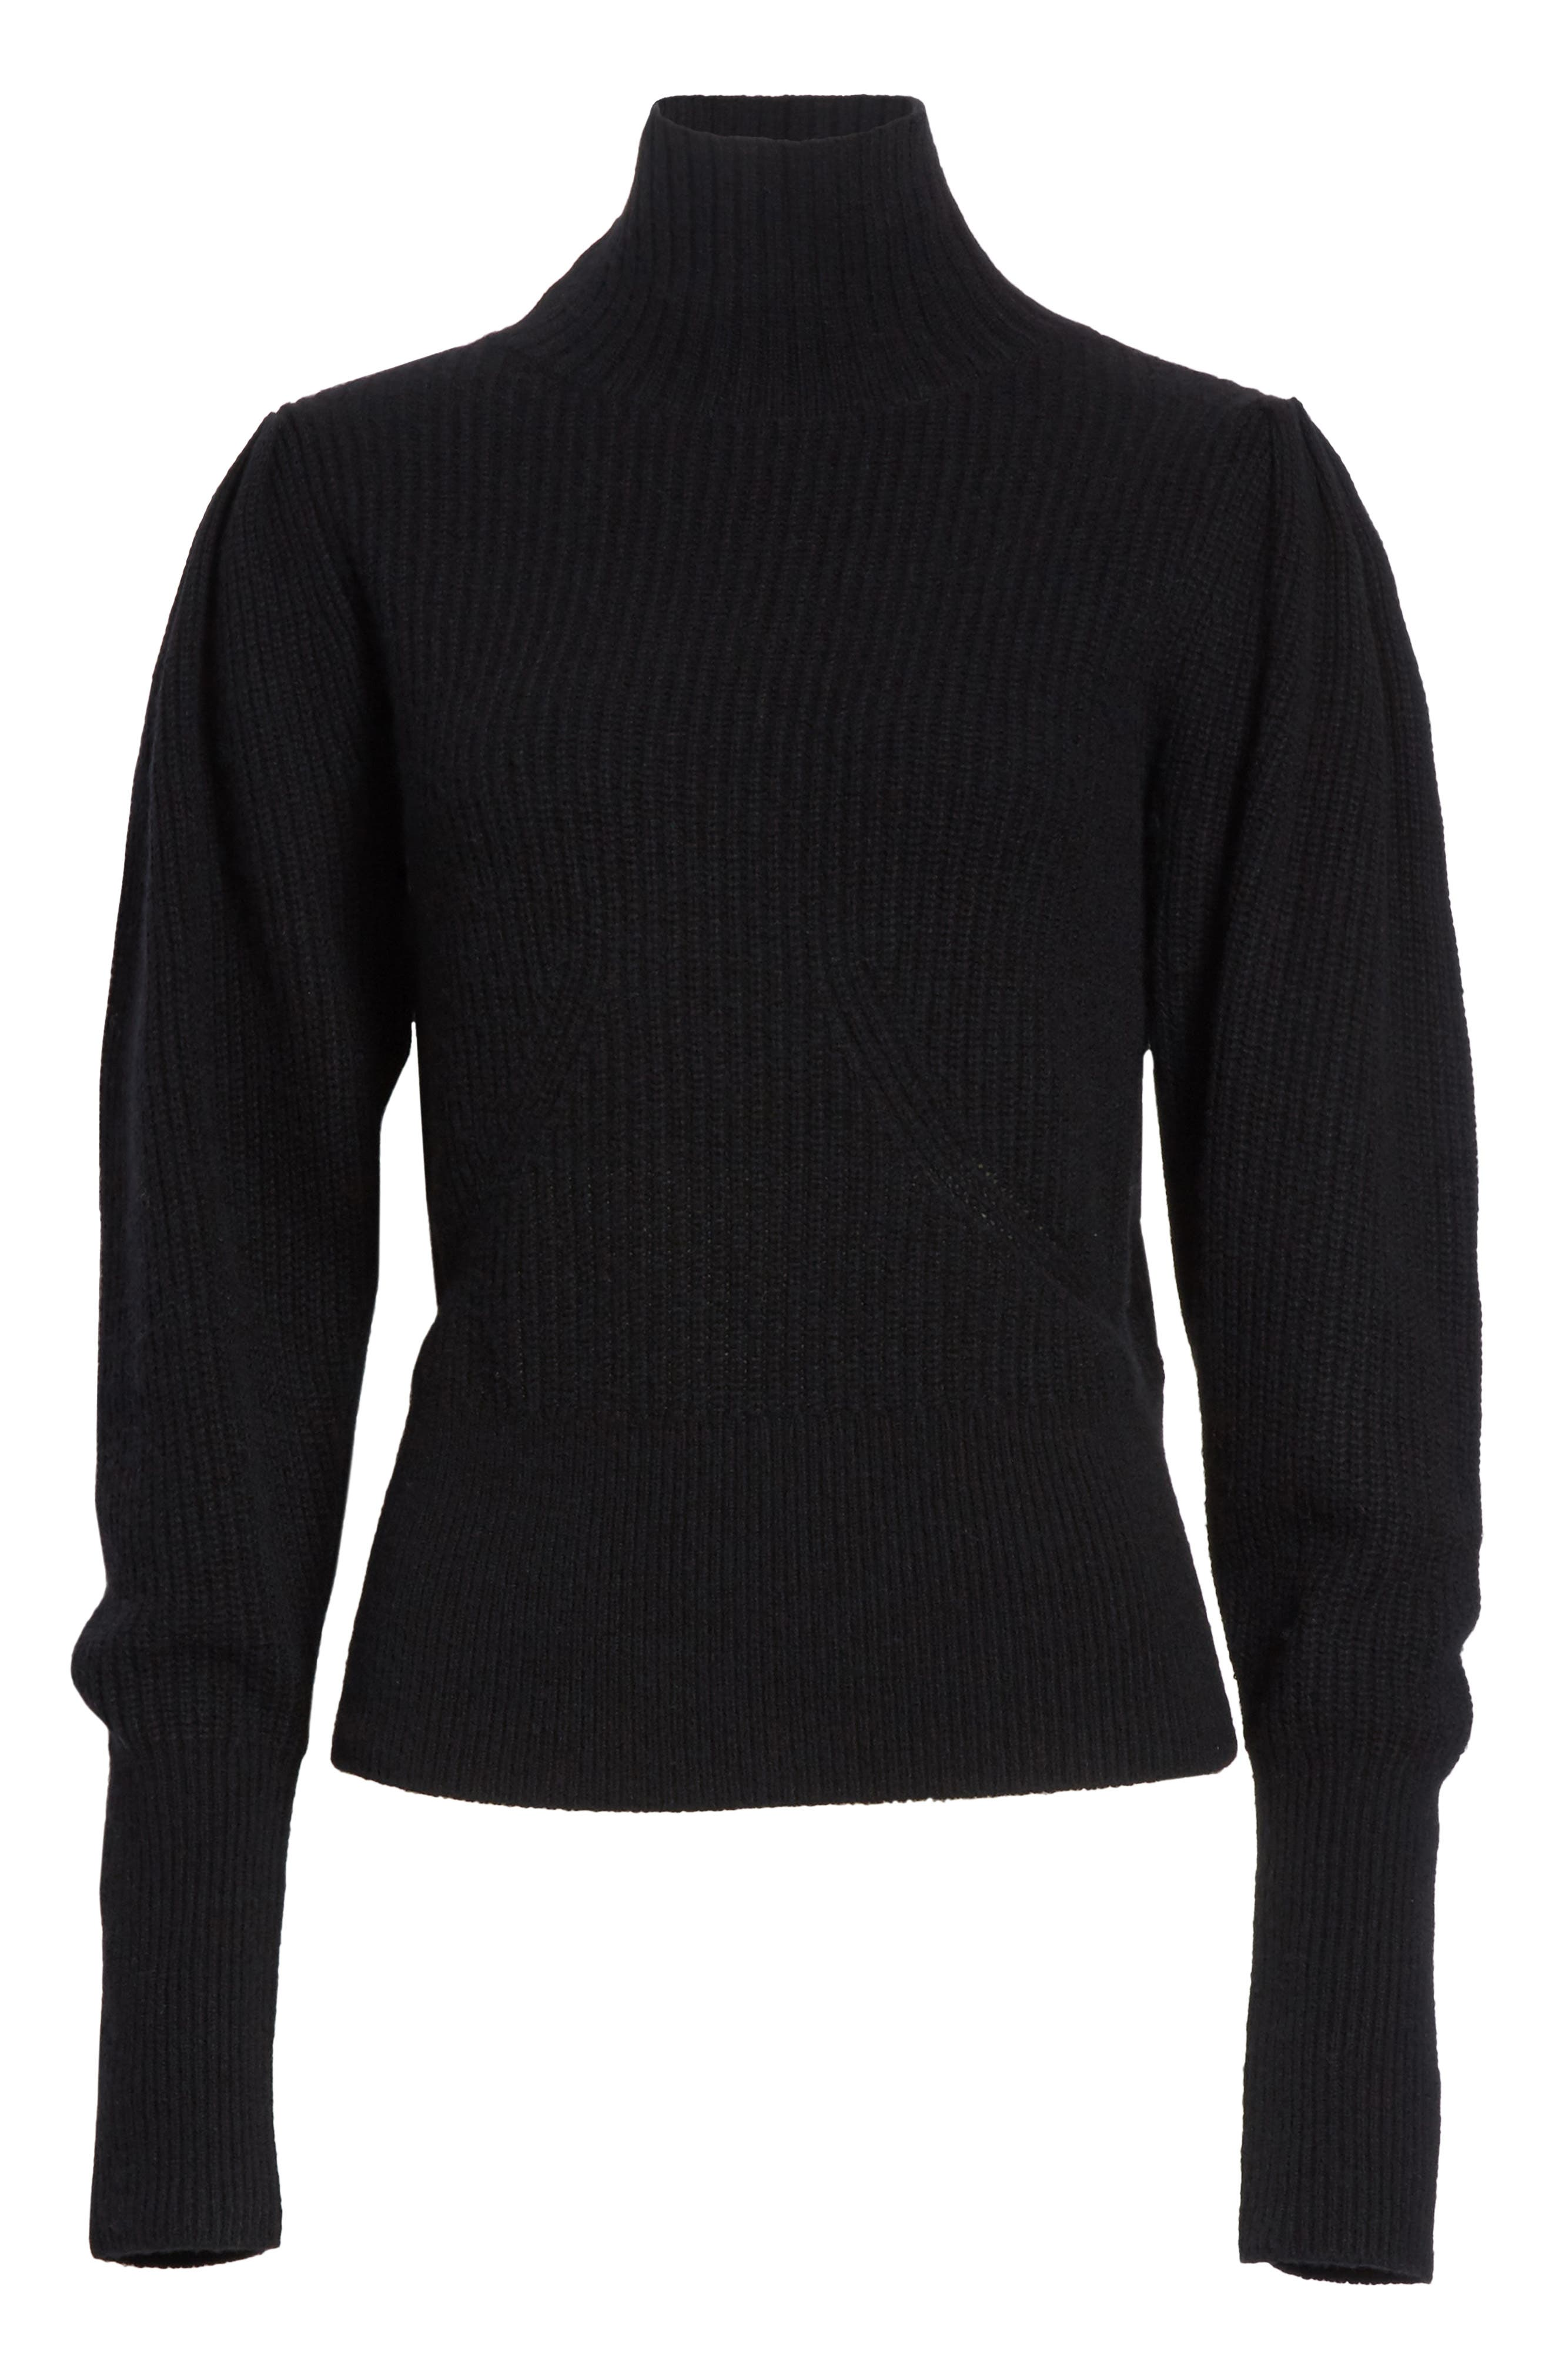 Wool & Cashmere Puff Sleeve Turtleneck Sweater,                             Alternate thumbnail 6, color,                             001